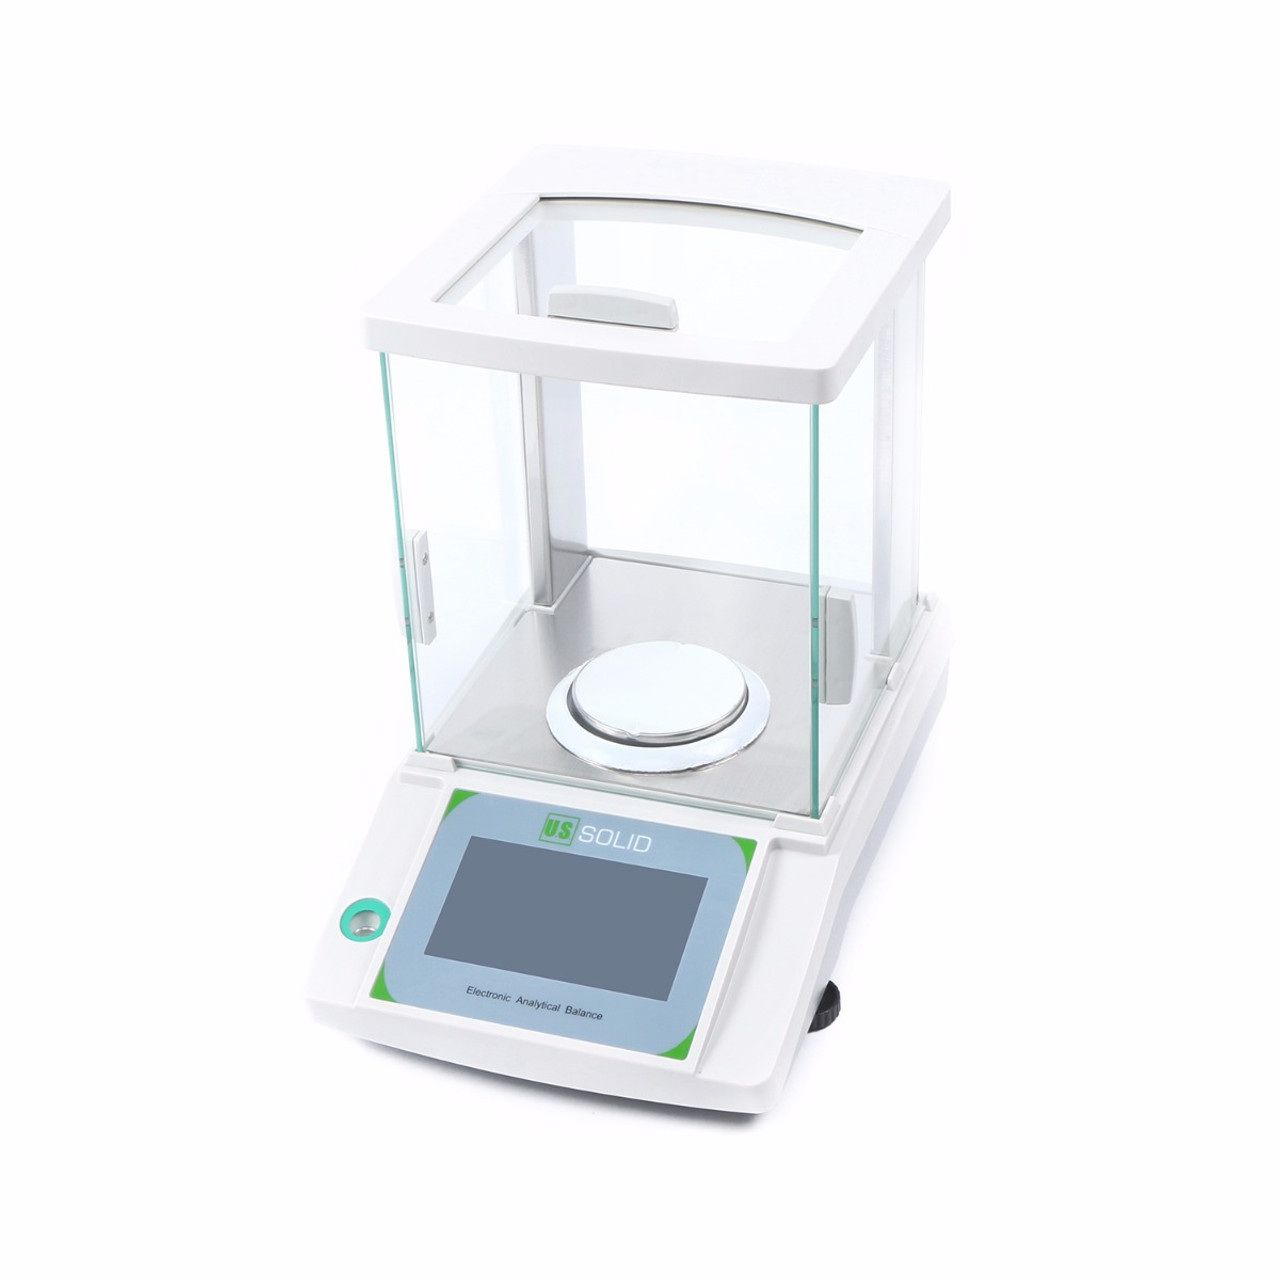 220 g 0.1mg Lab Analytical Balance Digital Precision Scale Touch Screen